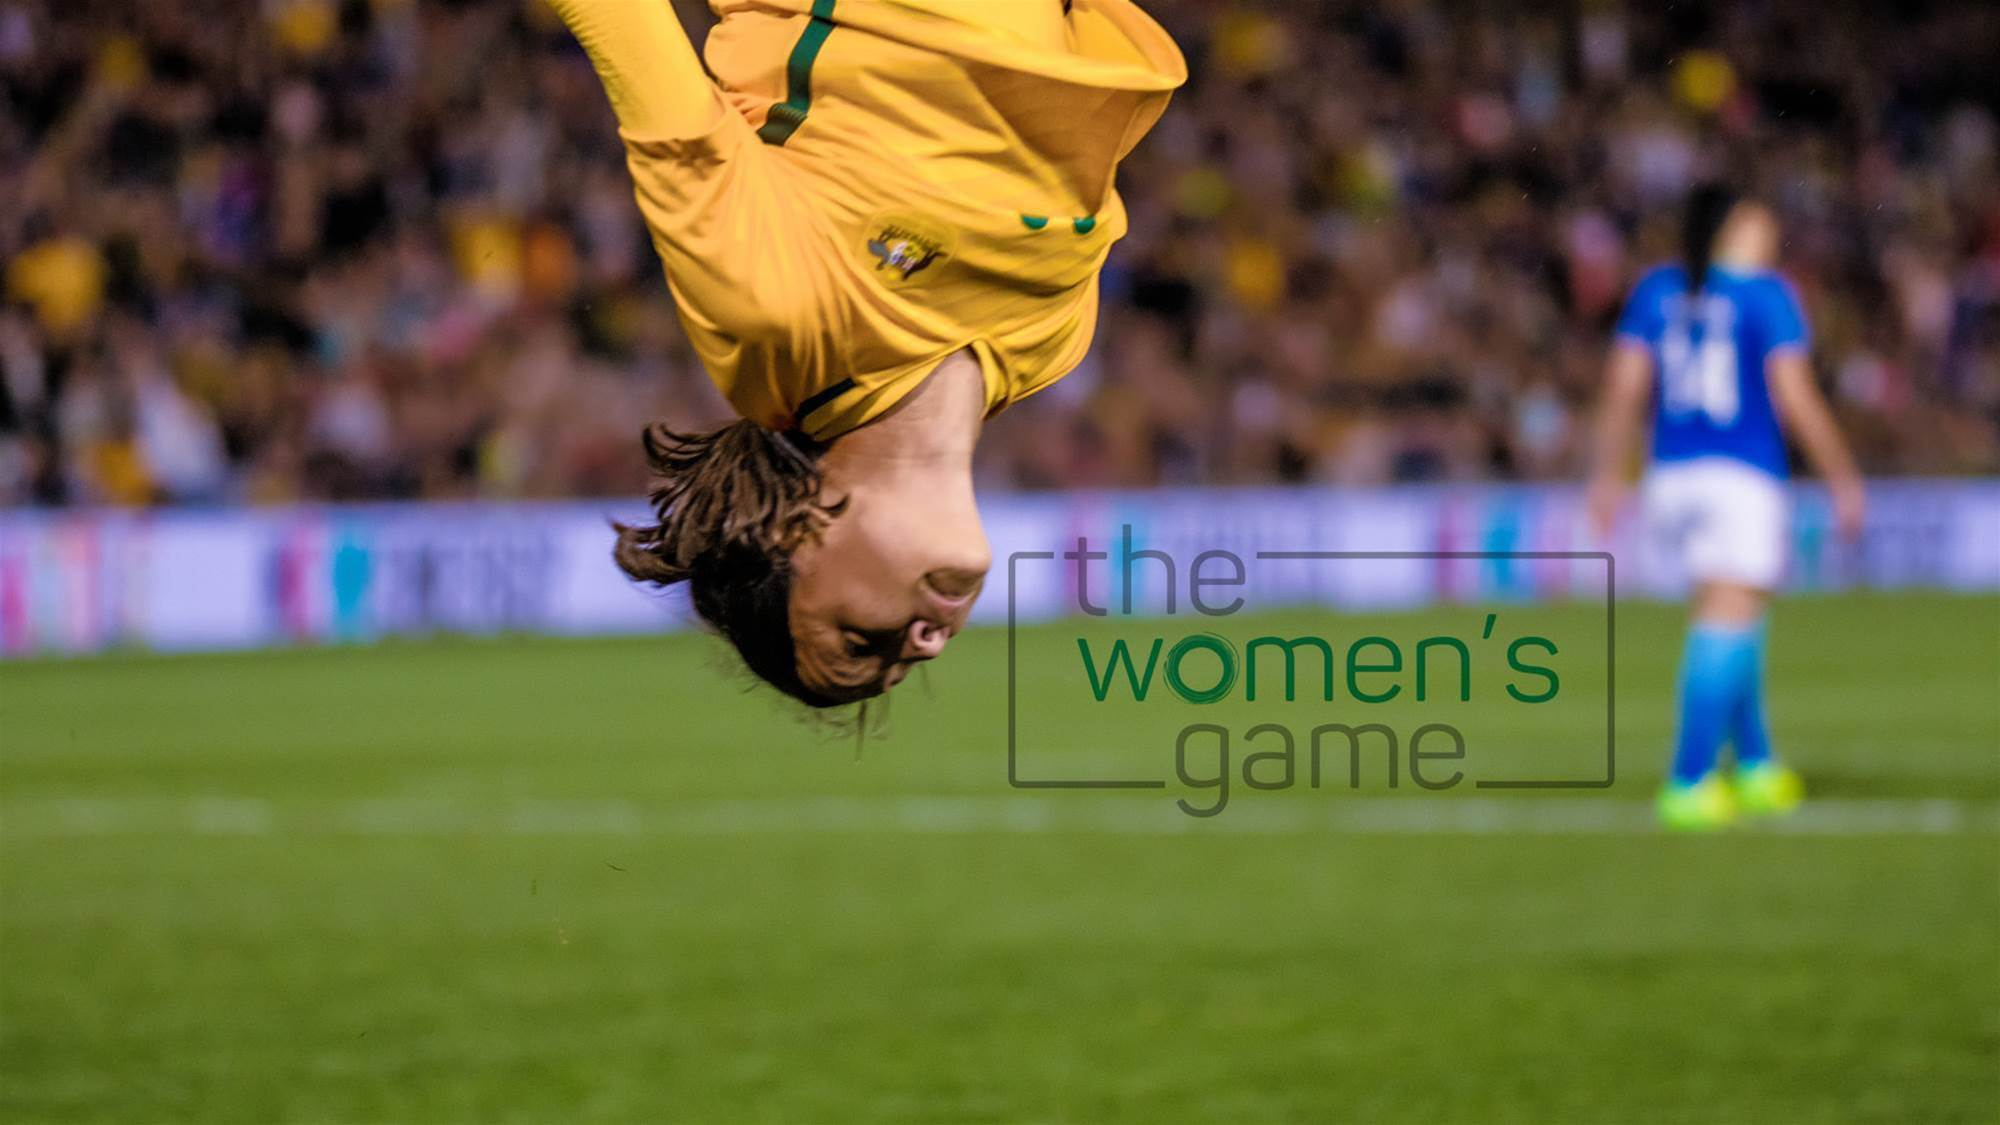 Coming soon... The Women's Game